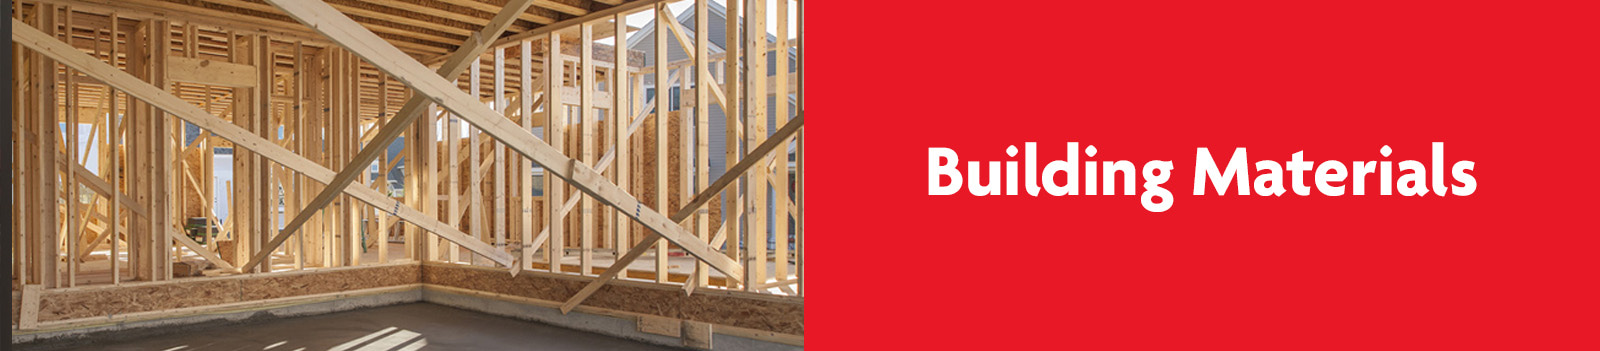 Shop for Building Materials Online | Home Hardware